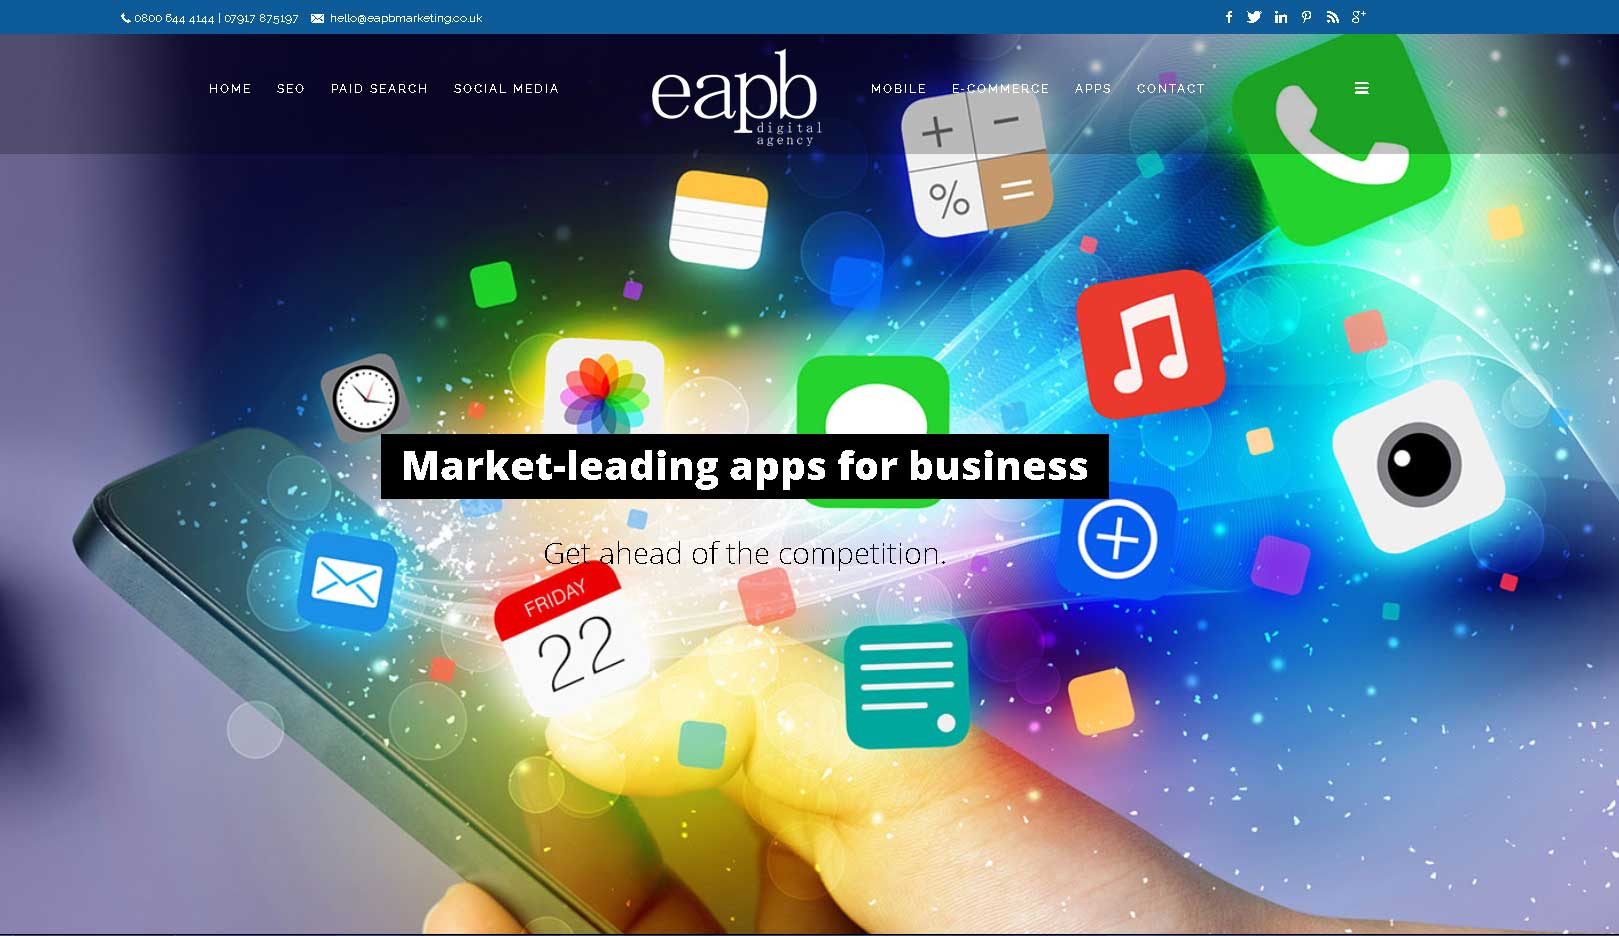 Eapb Marketing